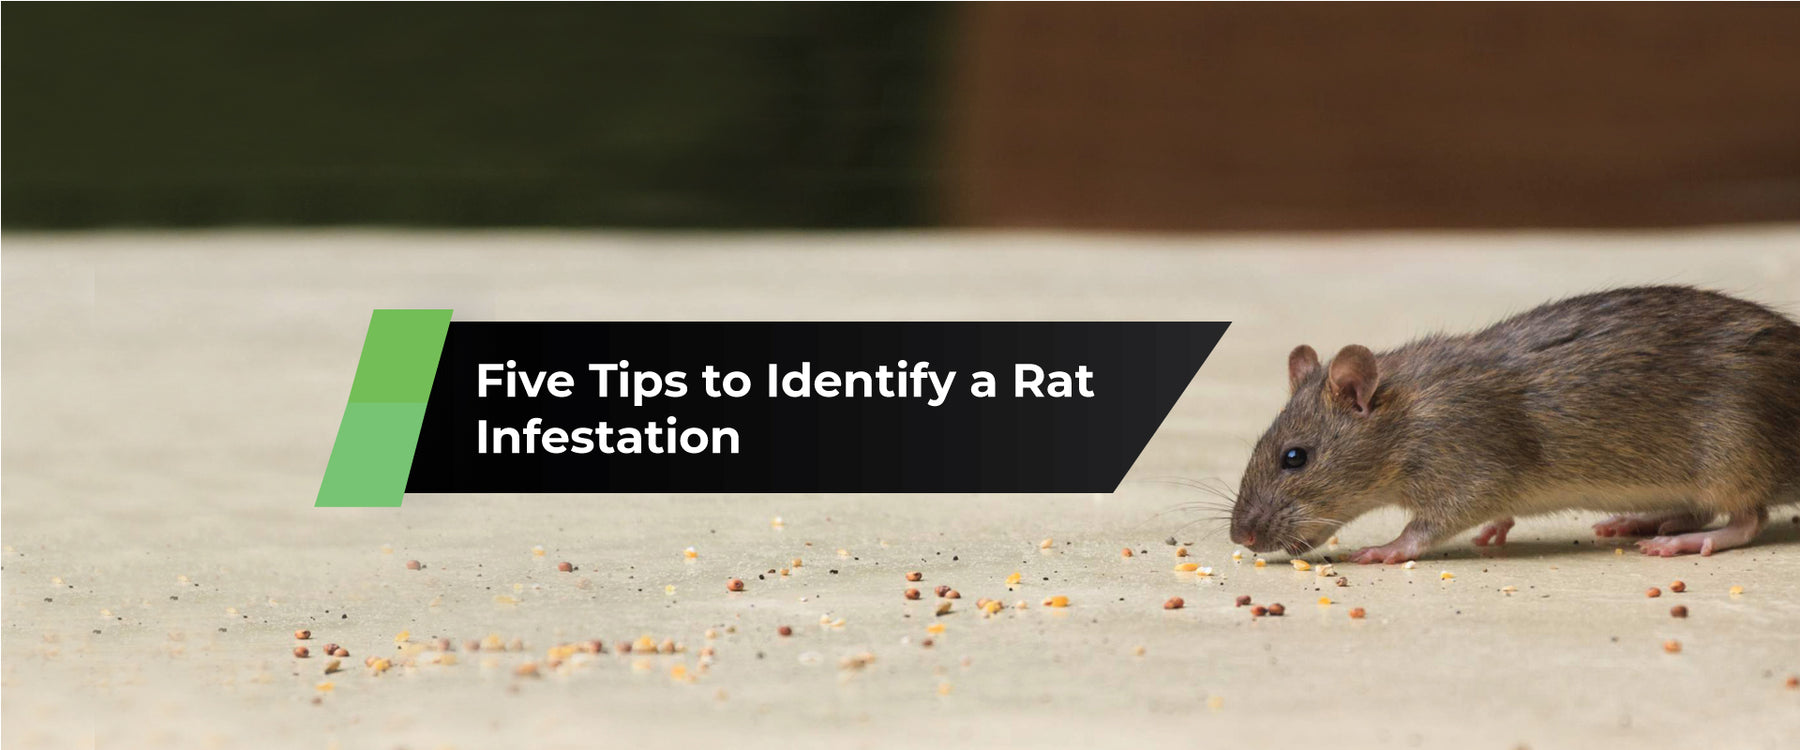 Five Tips to Identify a Rat Infestation